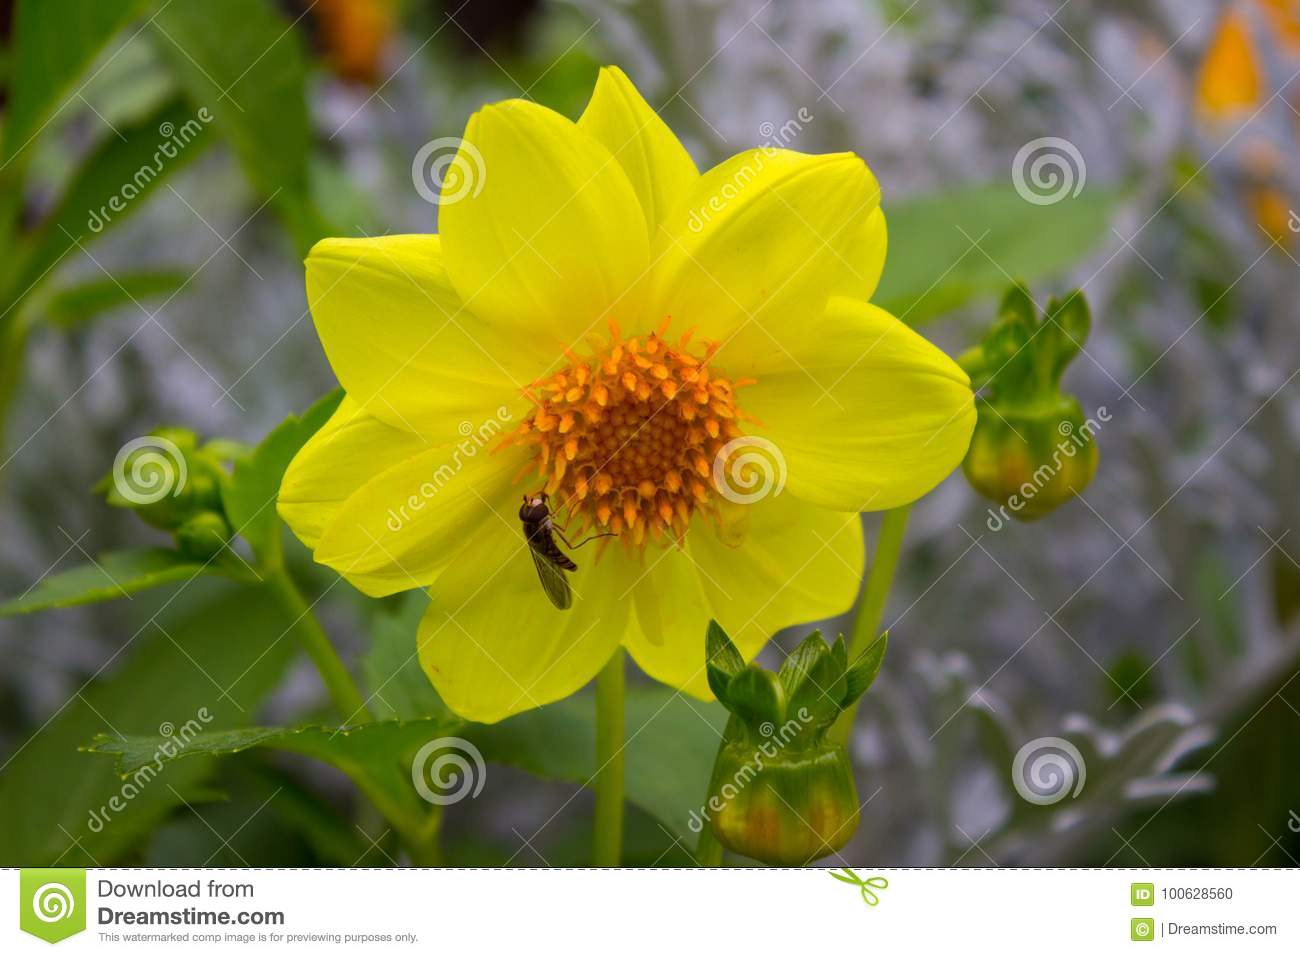 Yellow dahlia flower on background of different types of flowers yellow dahlia flower on background of different types of flowers izmirmasajfo